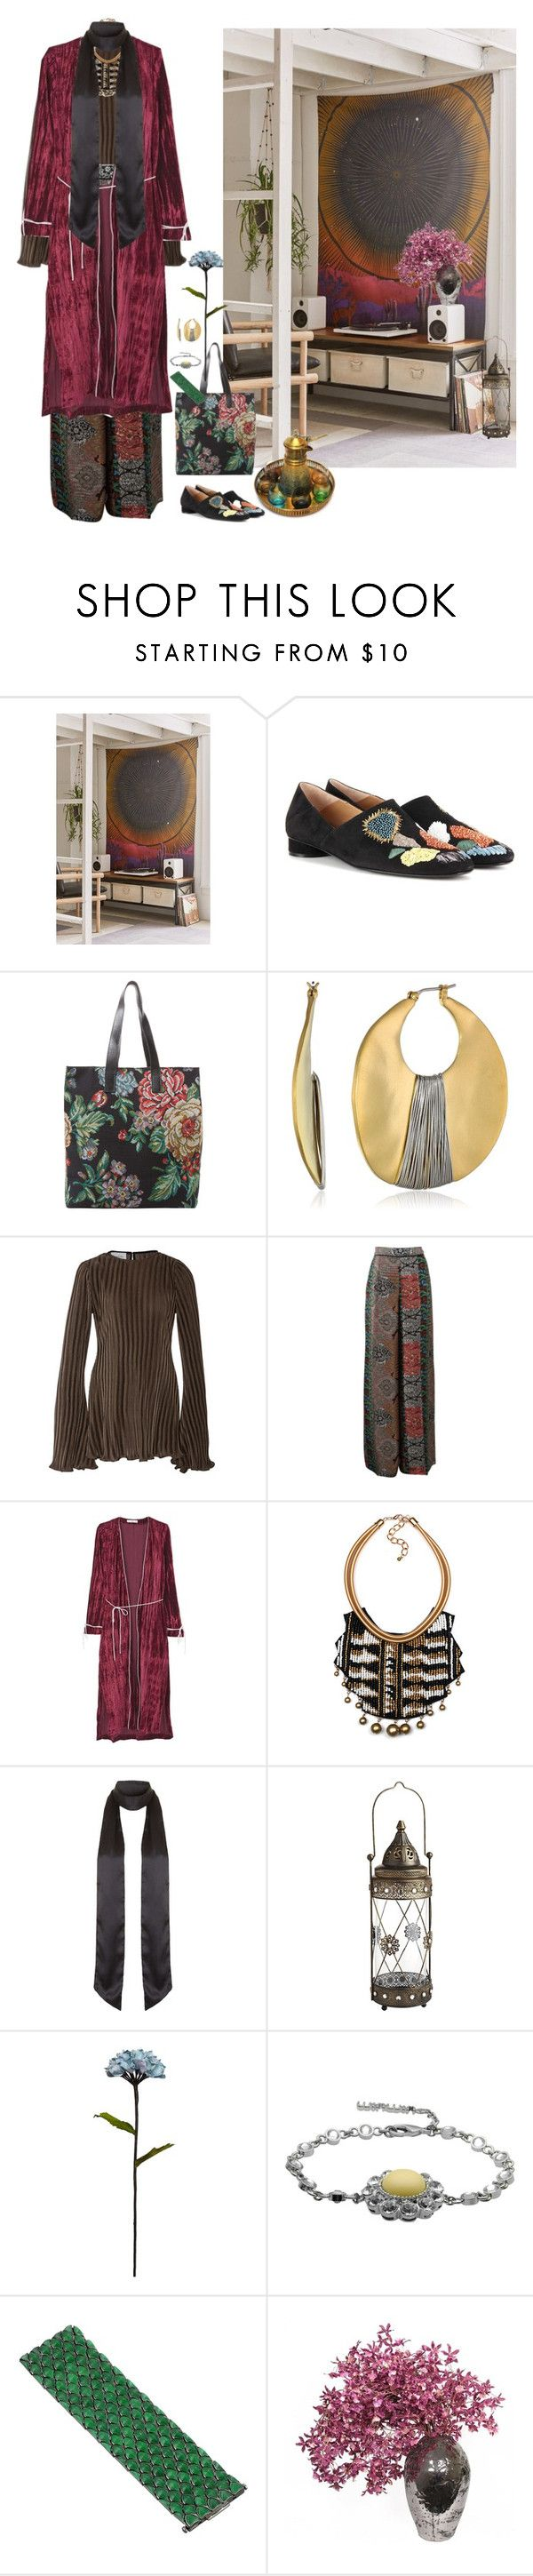 """""""Untitled #1010"""" by crooked-dollhouse ❤ liked on Polyvore featuring Urban Outfitters, The Row, Marie Turnor, Kenneth Cole, Beaufille, Oscar de la Renta, MANGO, Topshop, Pier 1 Imports and Shabby Chic"""